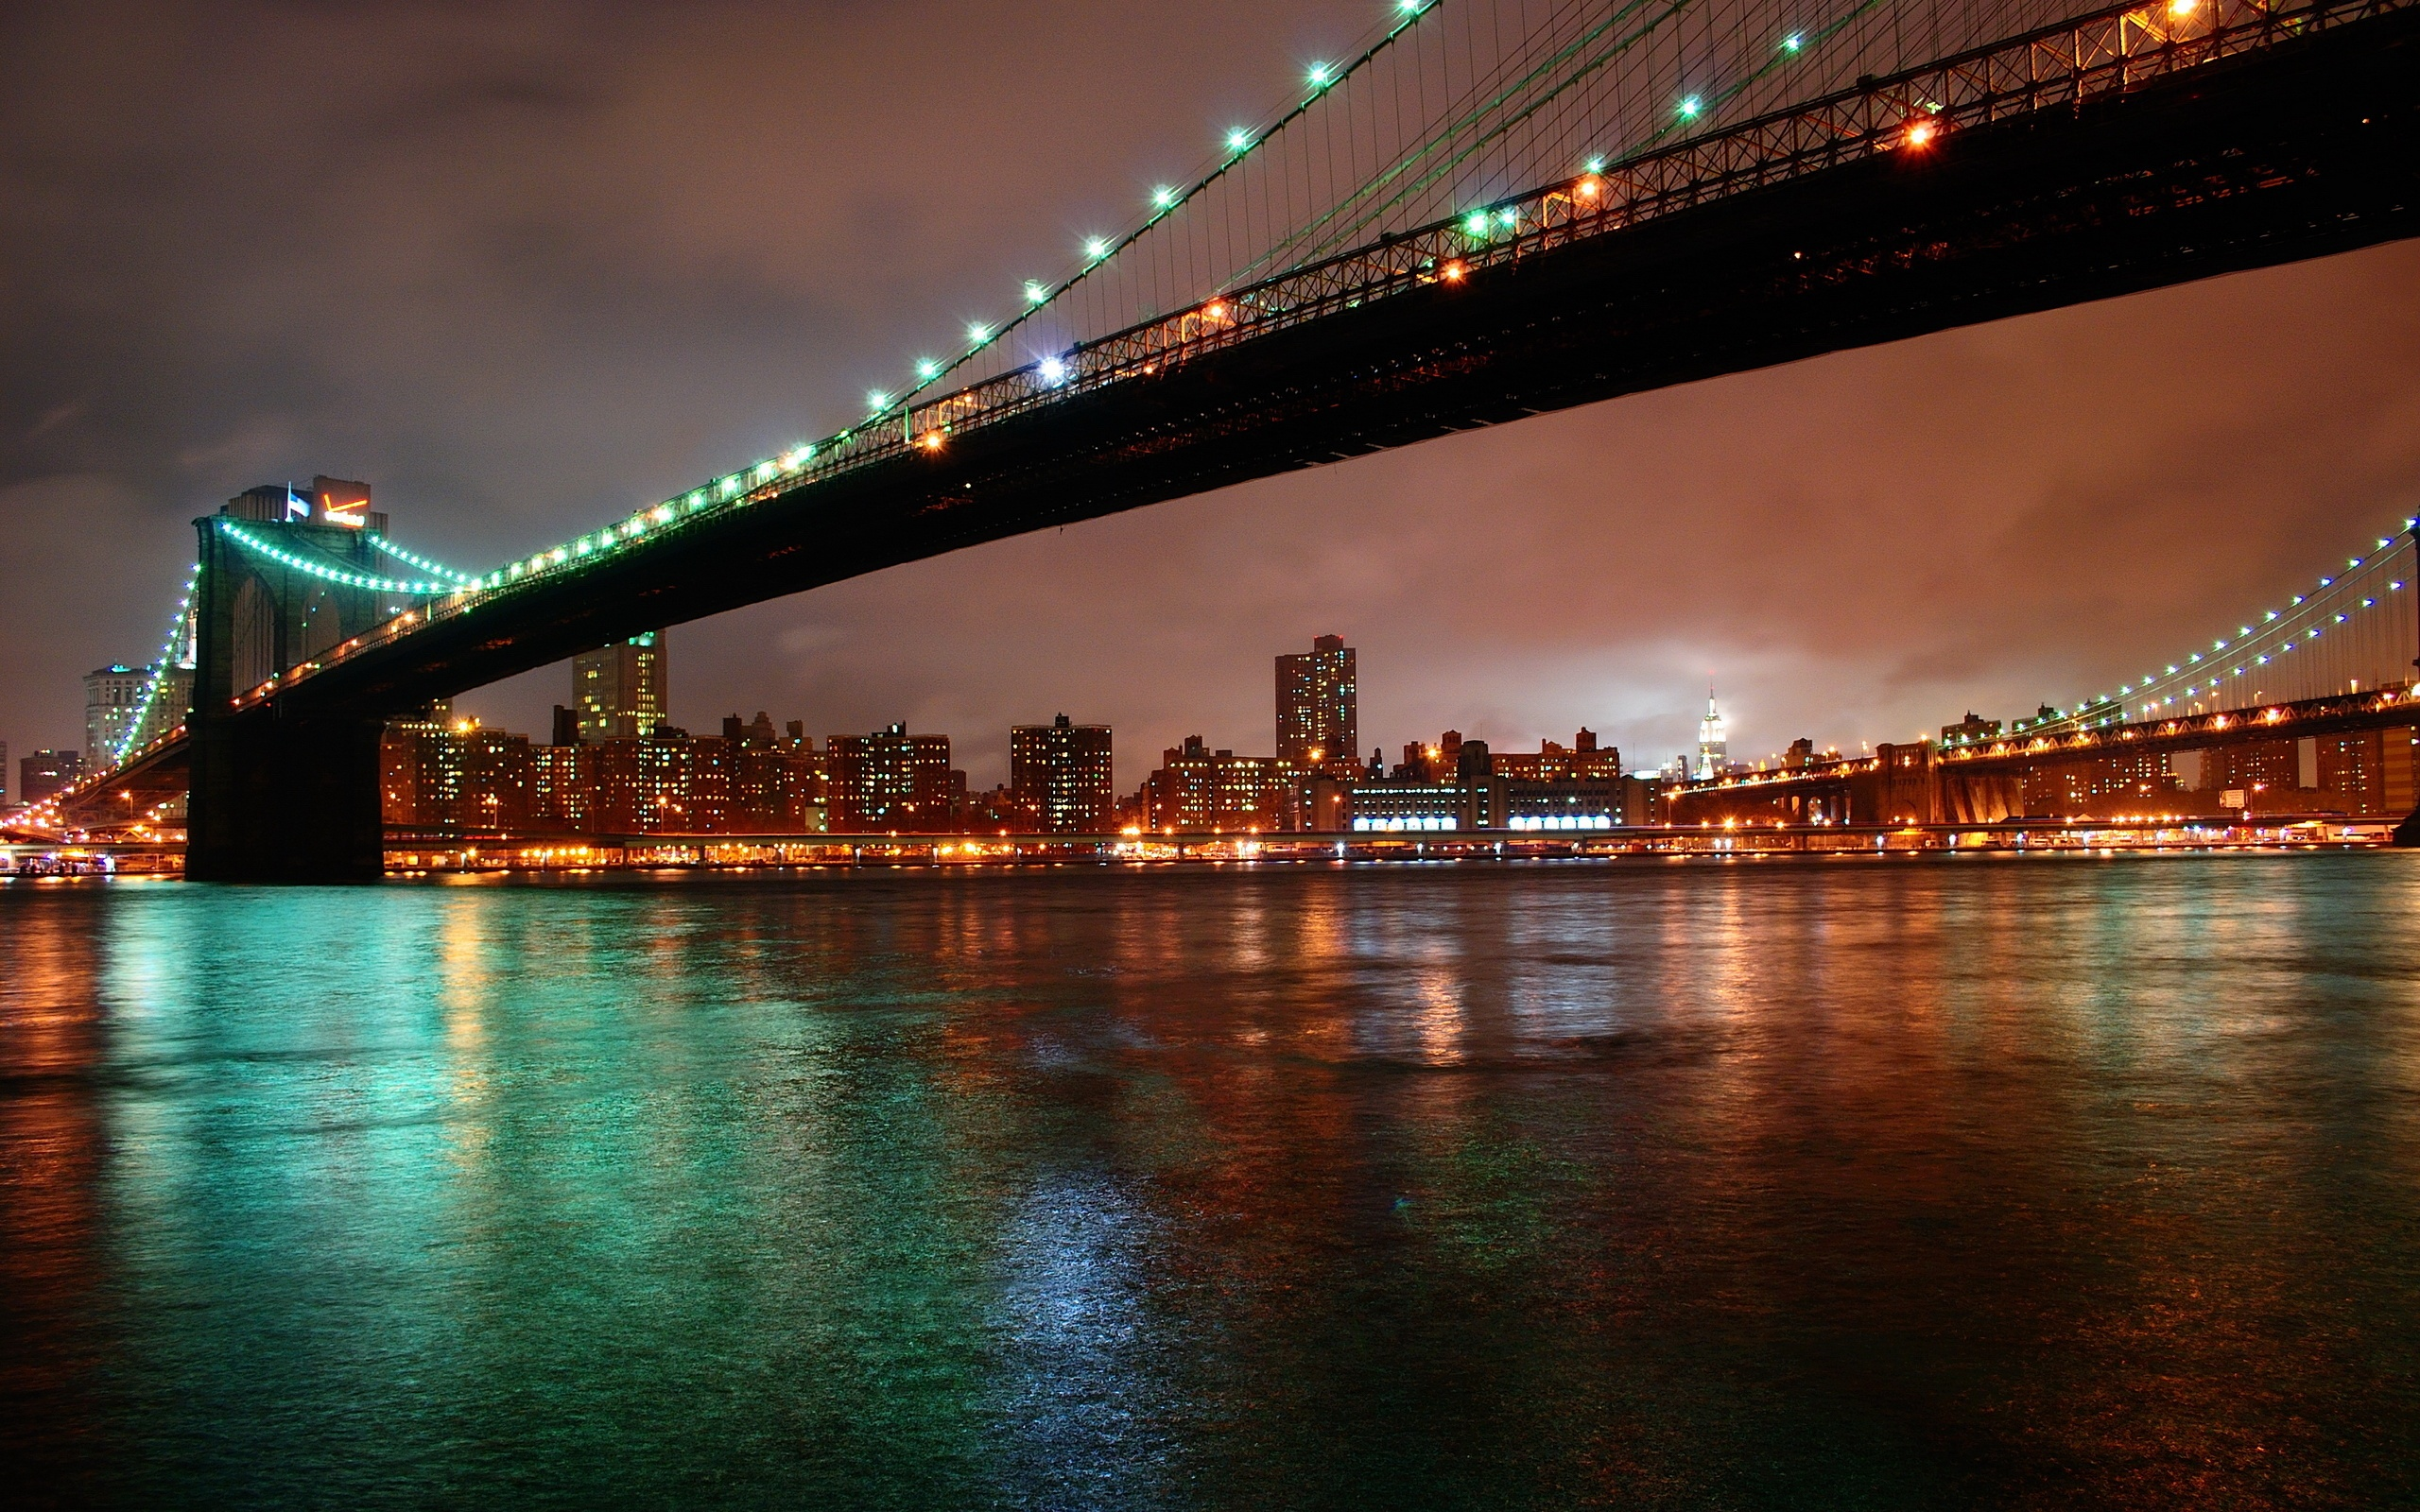 New York City Night Lights Wallpapers   2560x1600   1725615 2560x1600